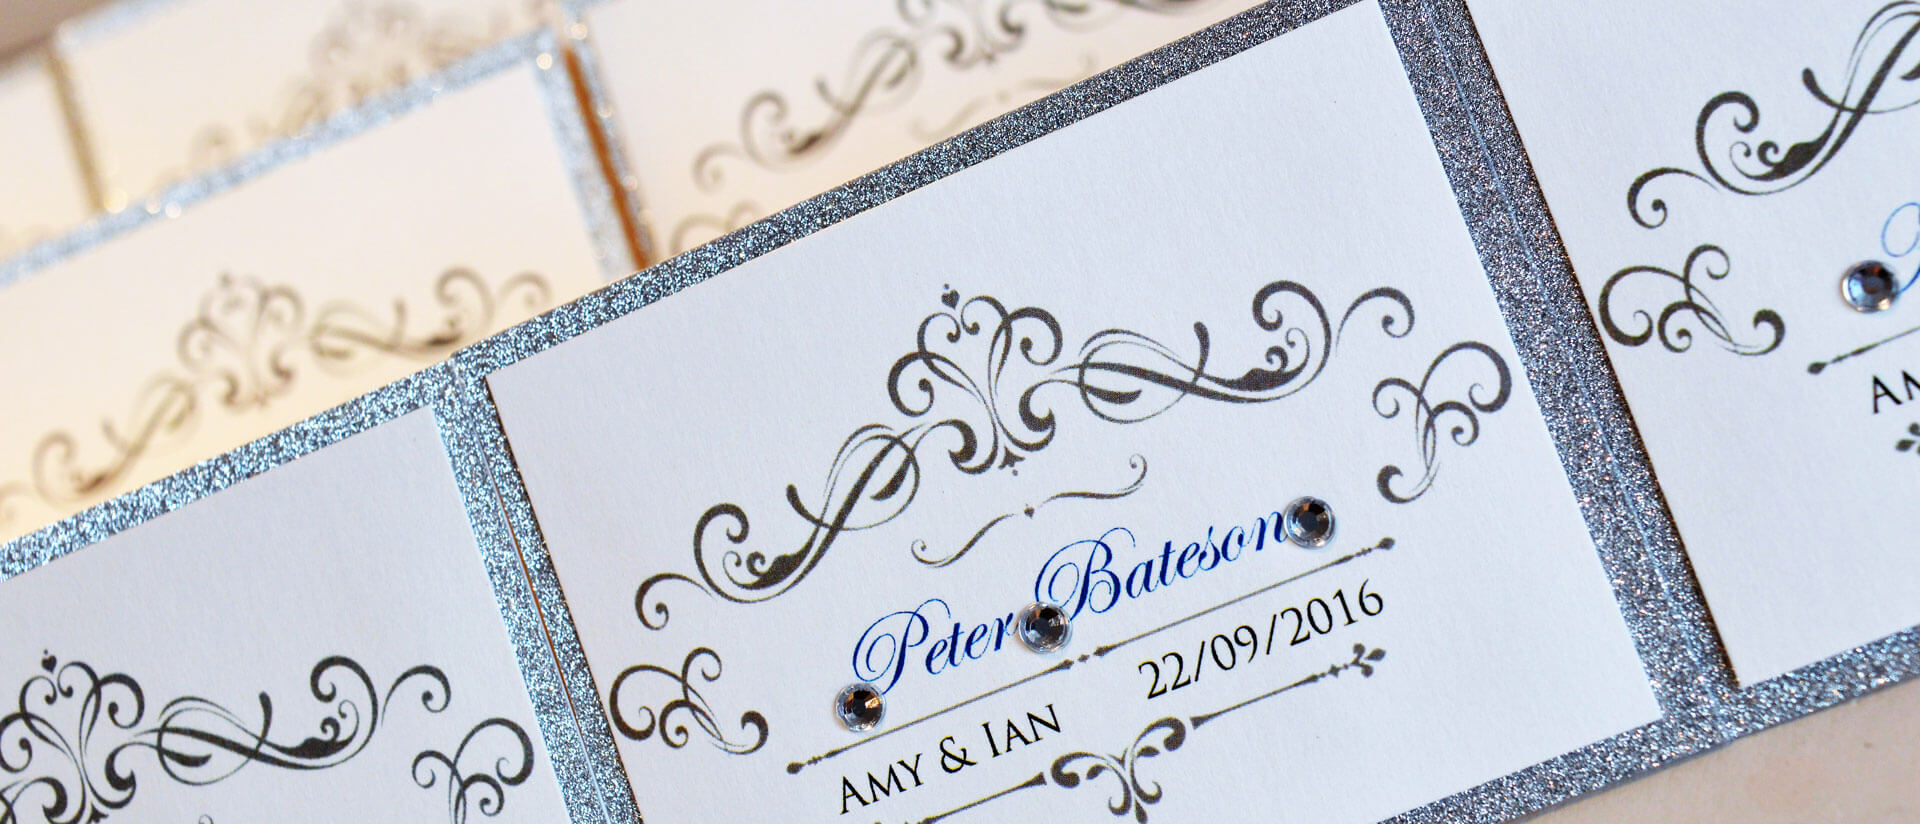 Stunning handmade silver and white sparkly name place cards by Charlotte Designs